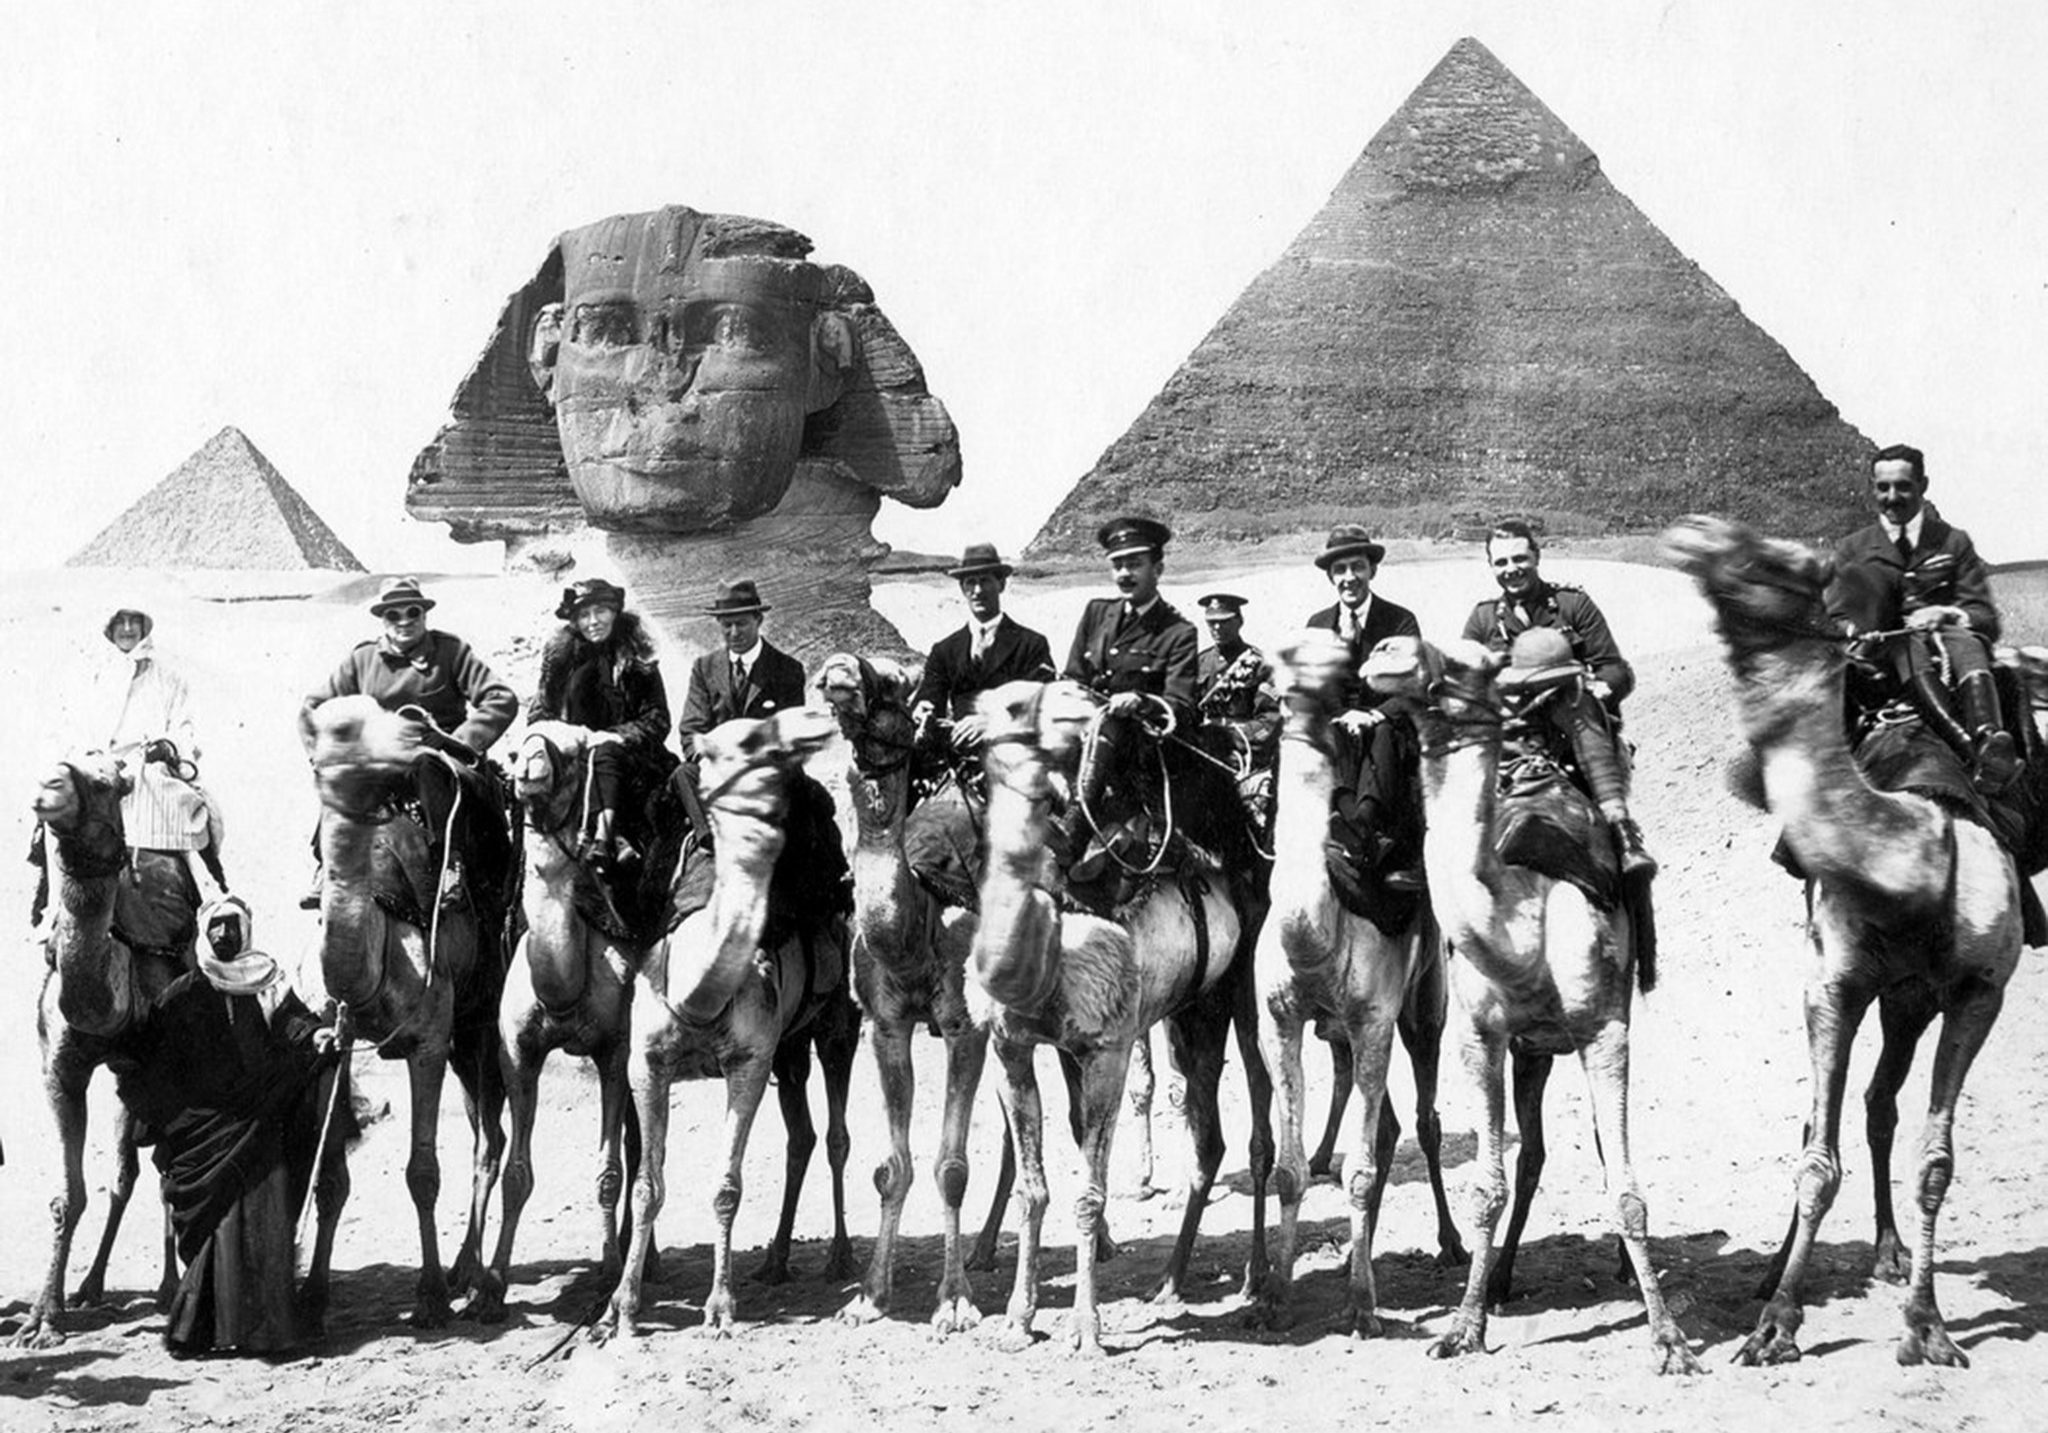 Gertrude Bell, T. E. Lawrence and Winston Churchill, at Giza during the 1921 Cairo Conference